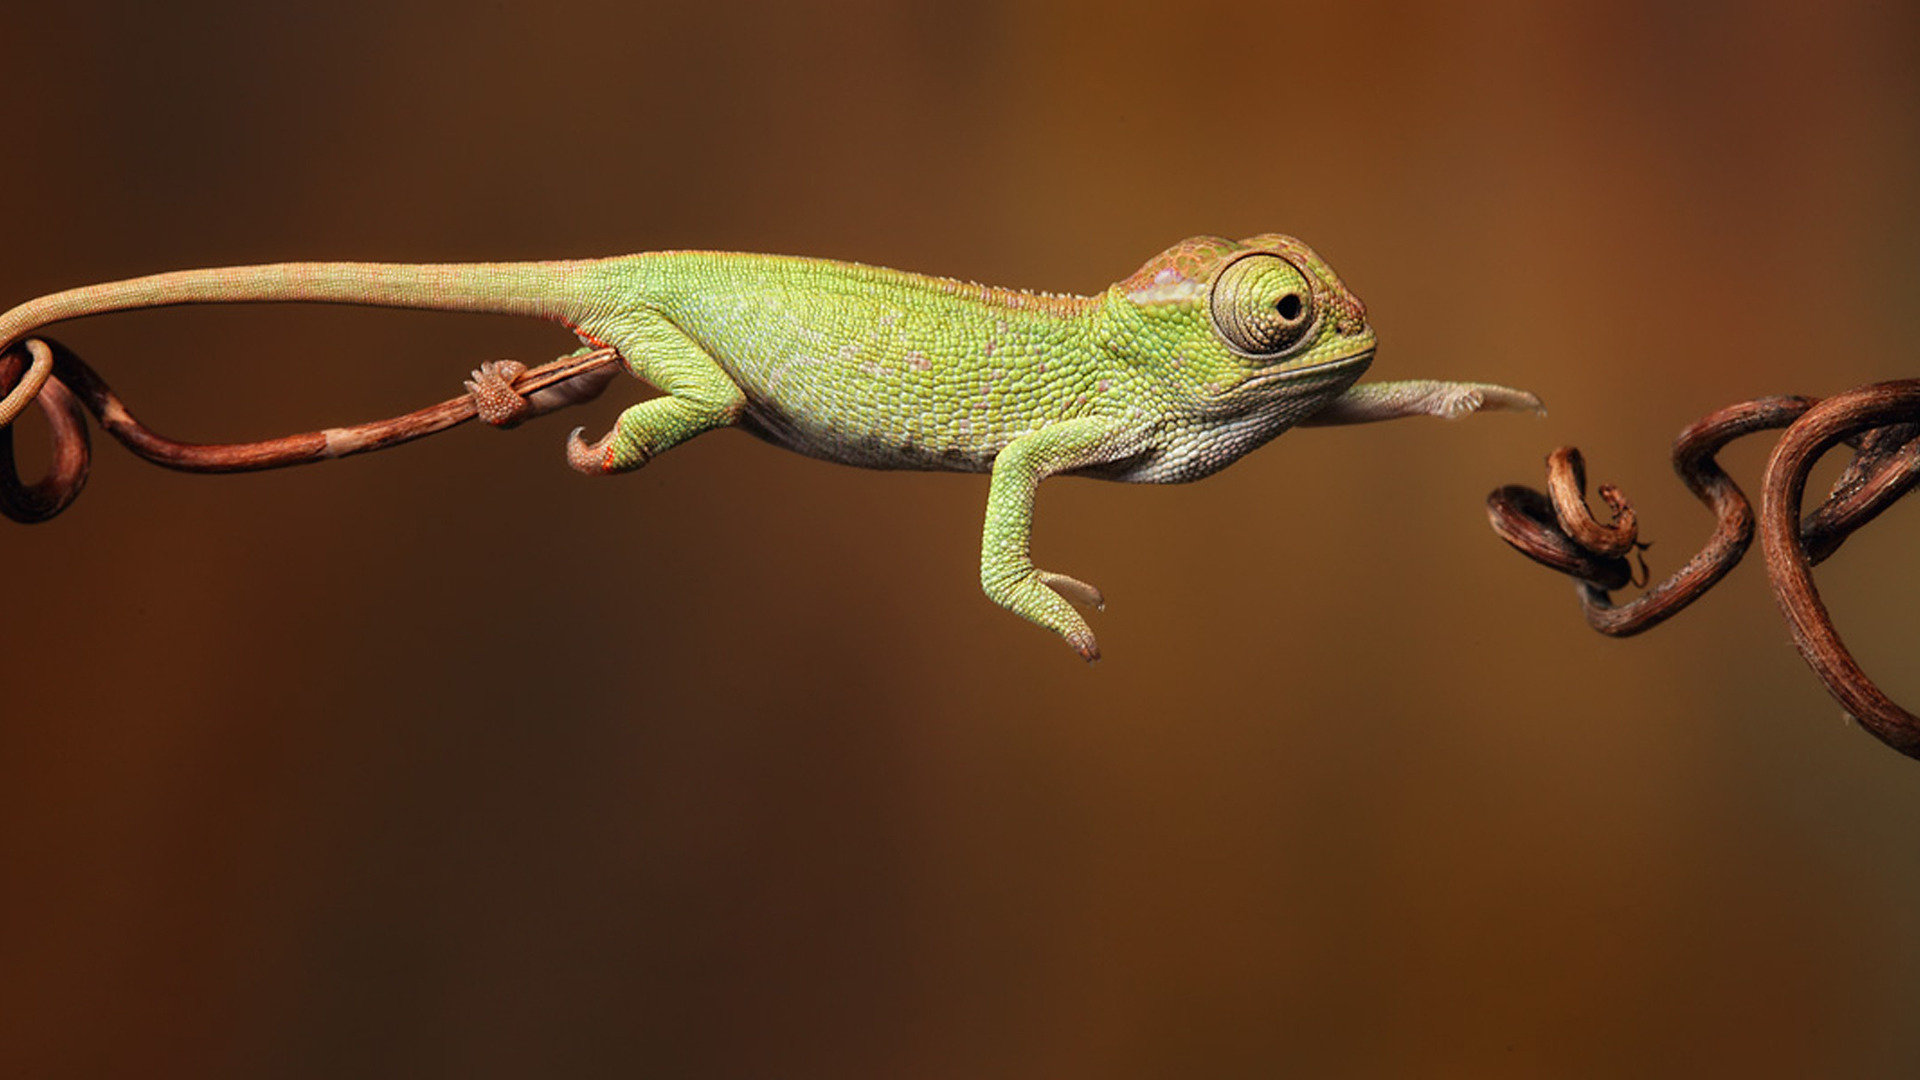 Free download Chameleon wallpaper ID:462550 full hd for computer